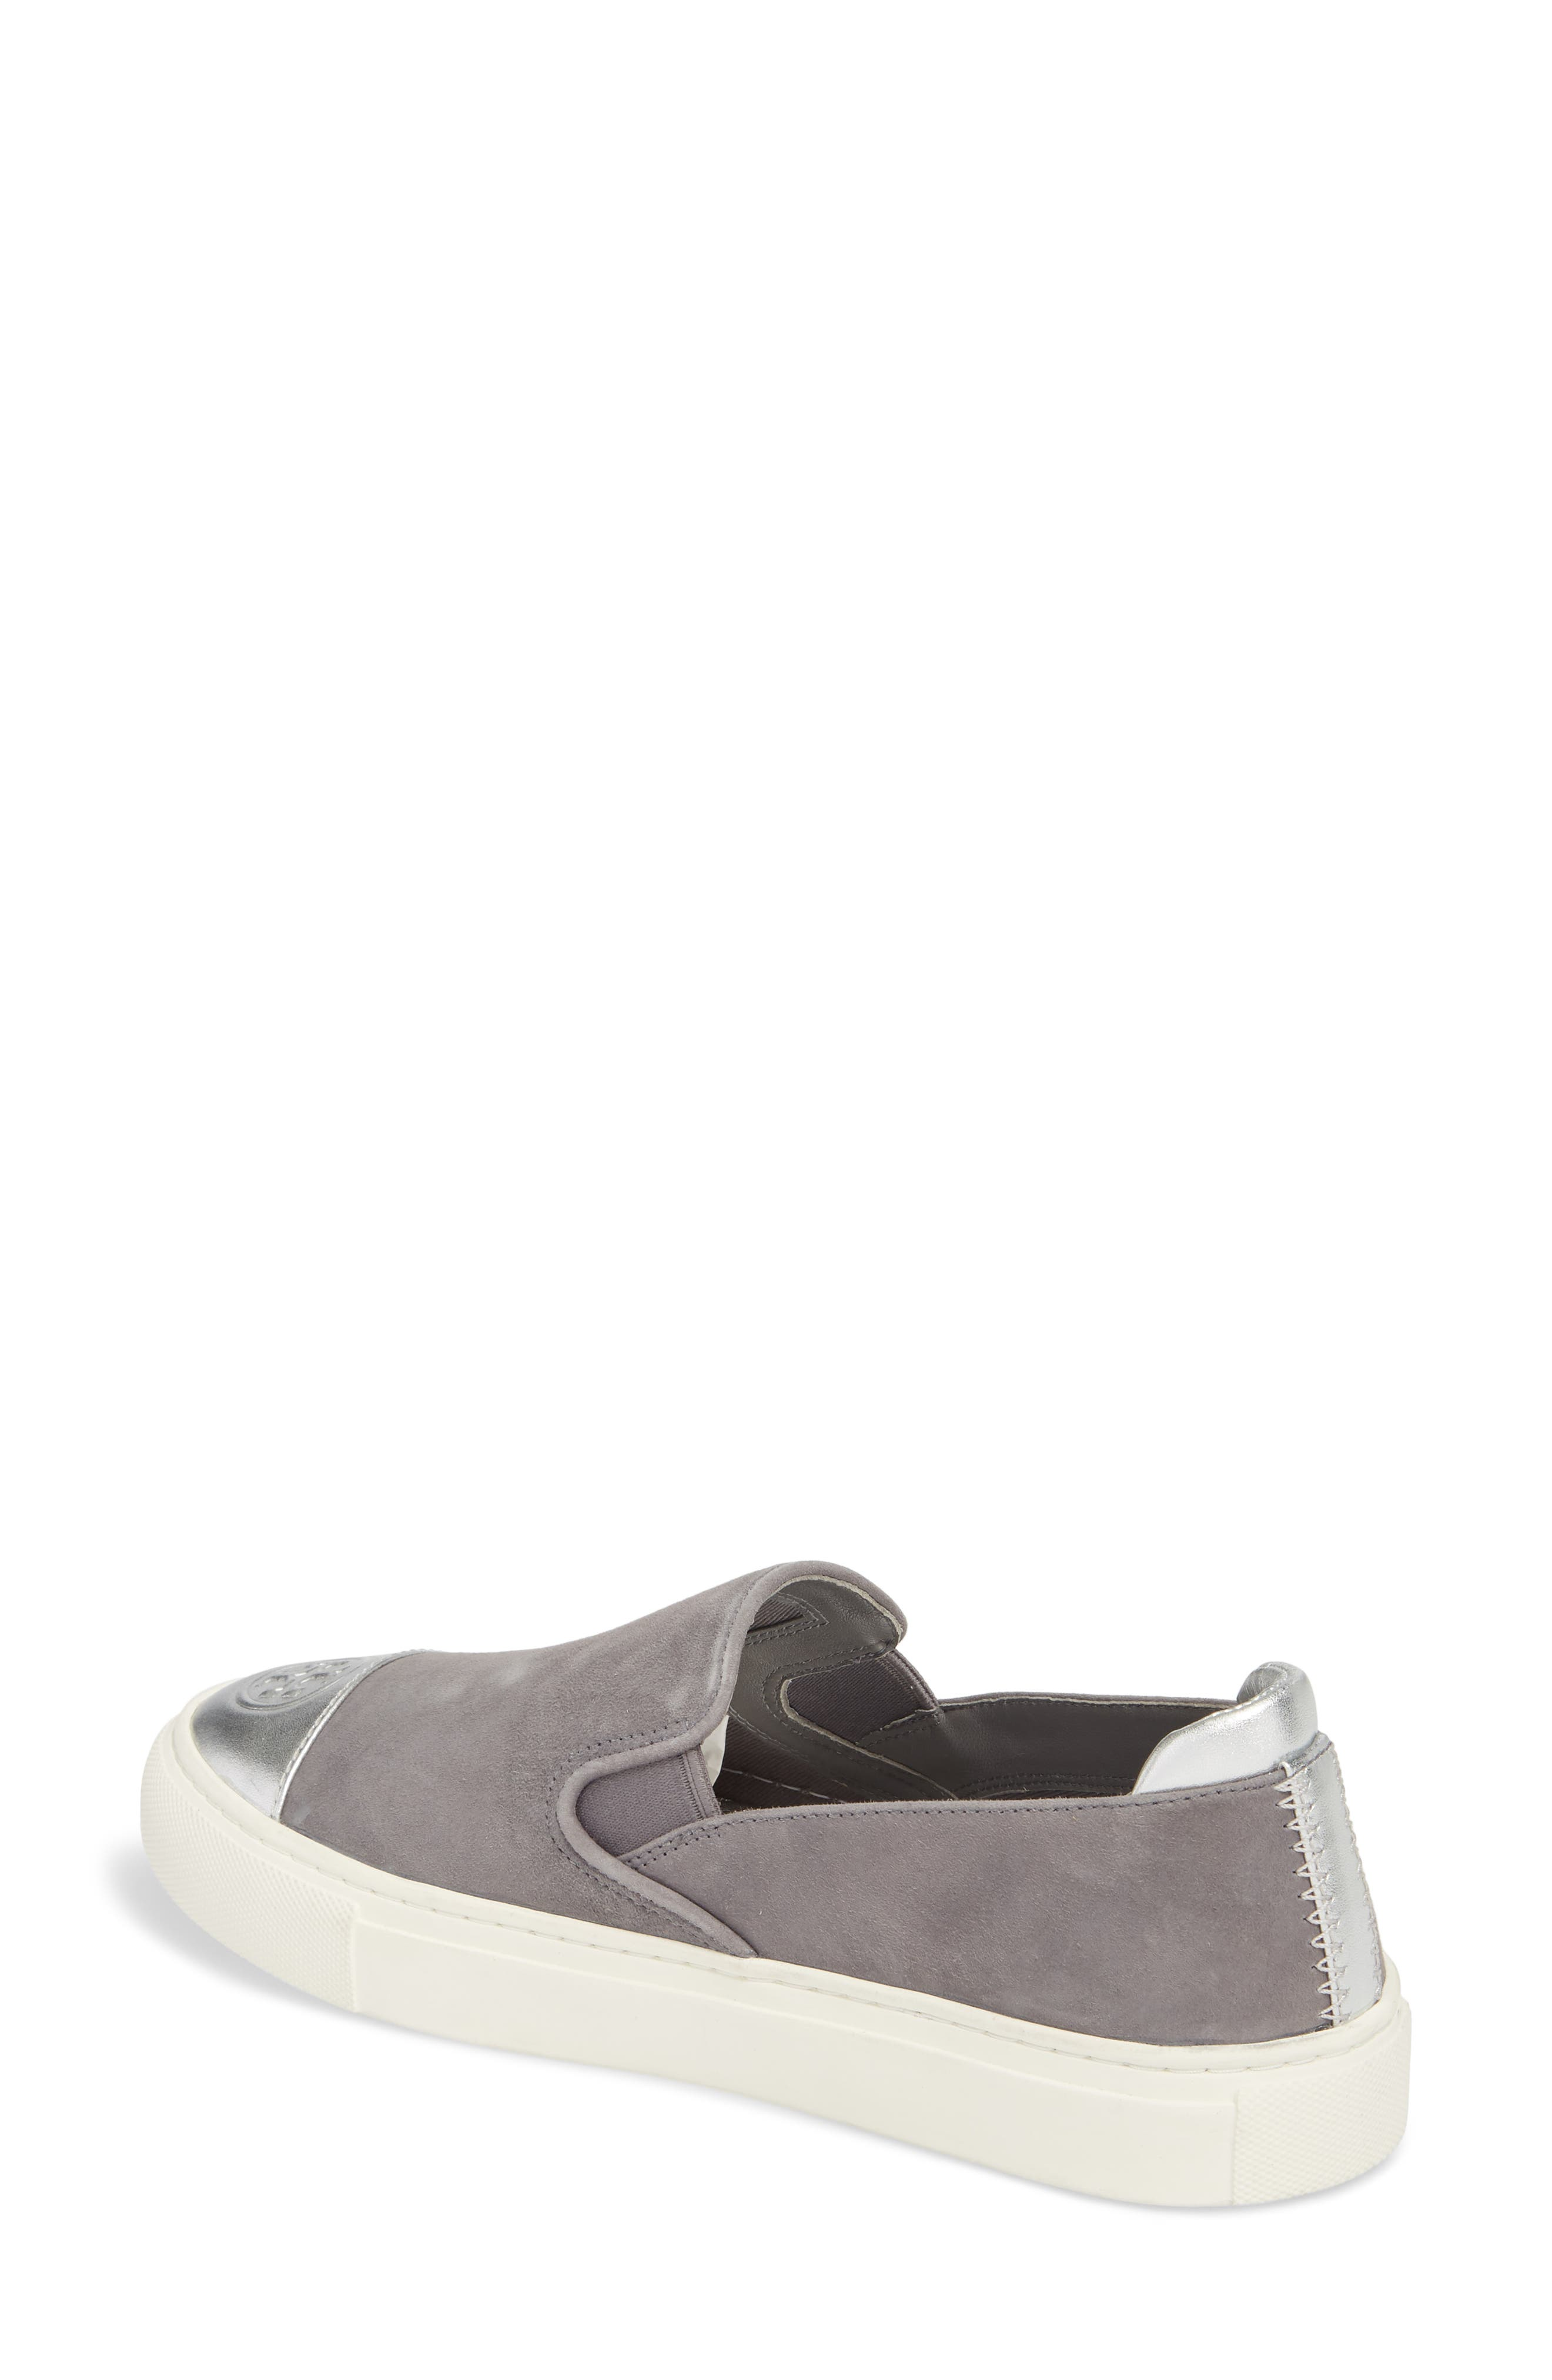 Colorblock Slip-On Sneaker,                             Alternate thumbnail 2, color,                             Carbon/ Silver